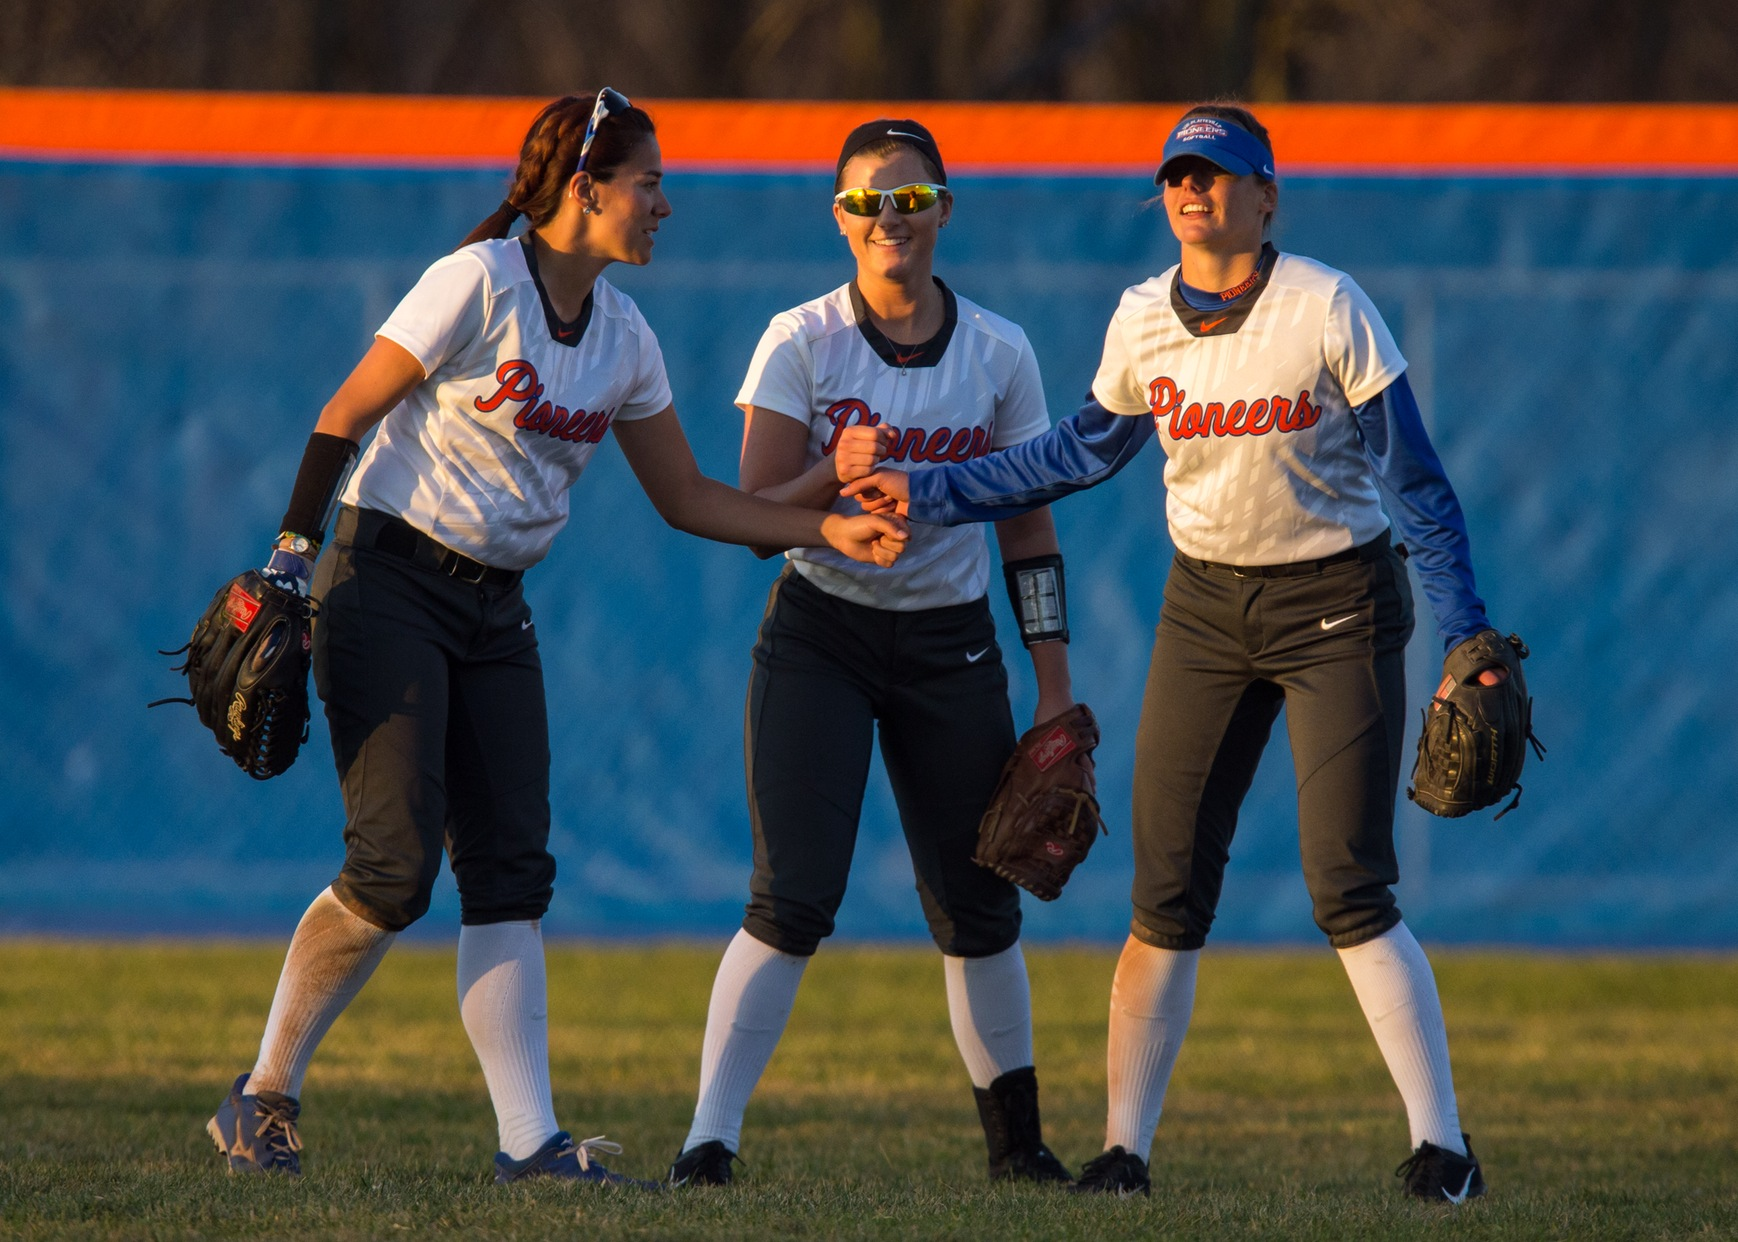 Softball wins, surpasses last year's total